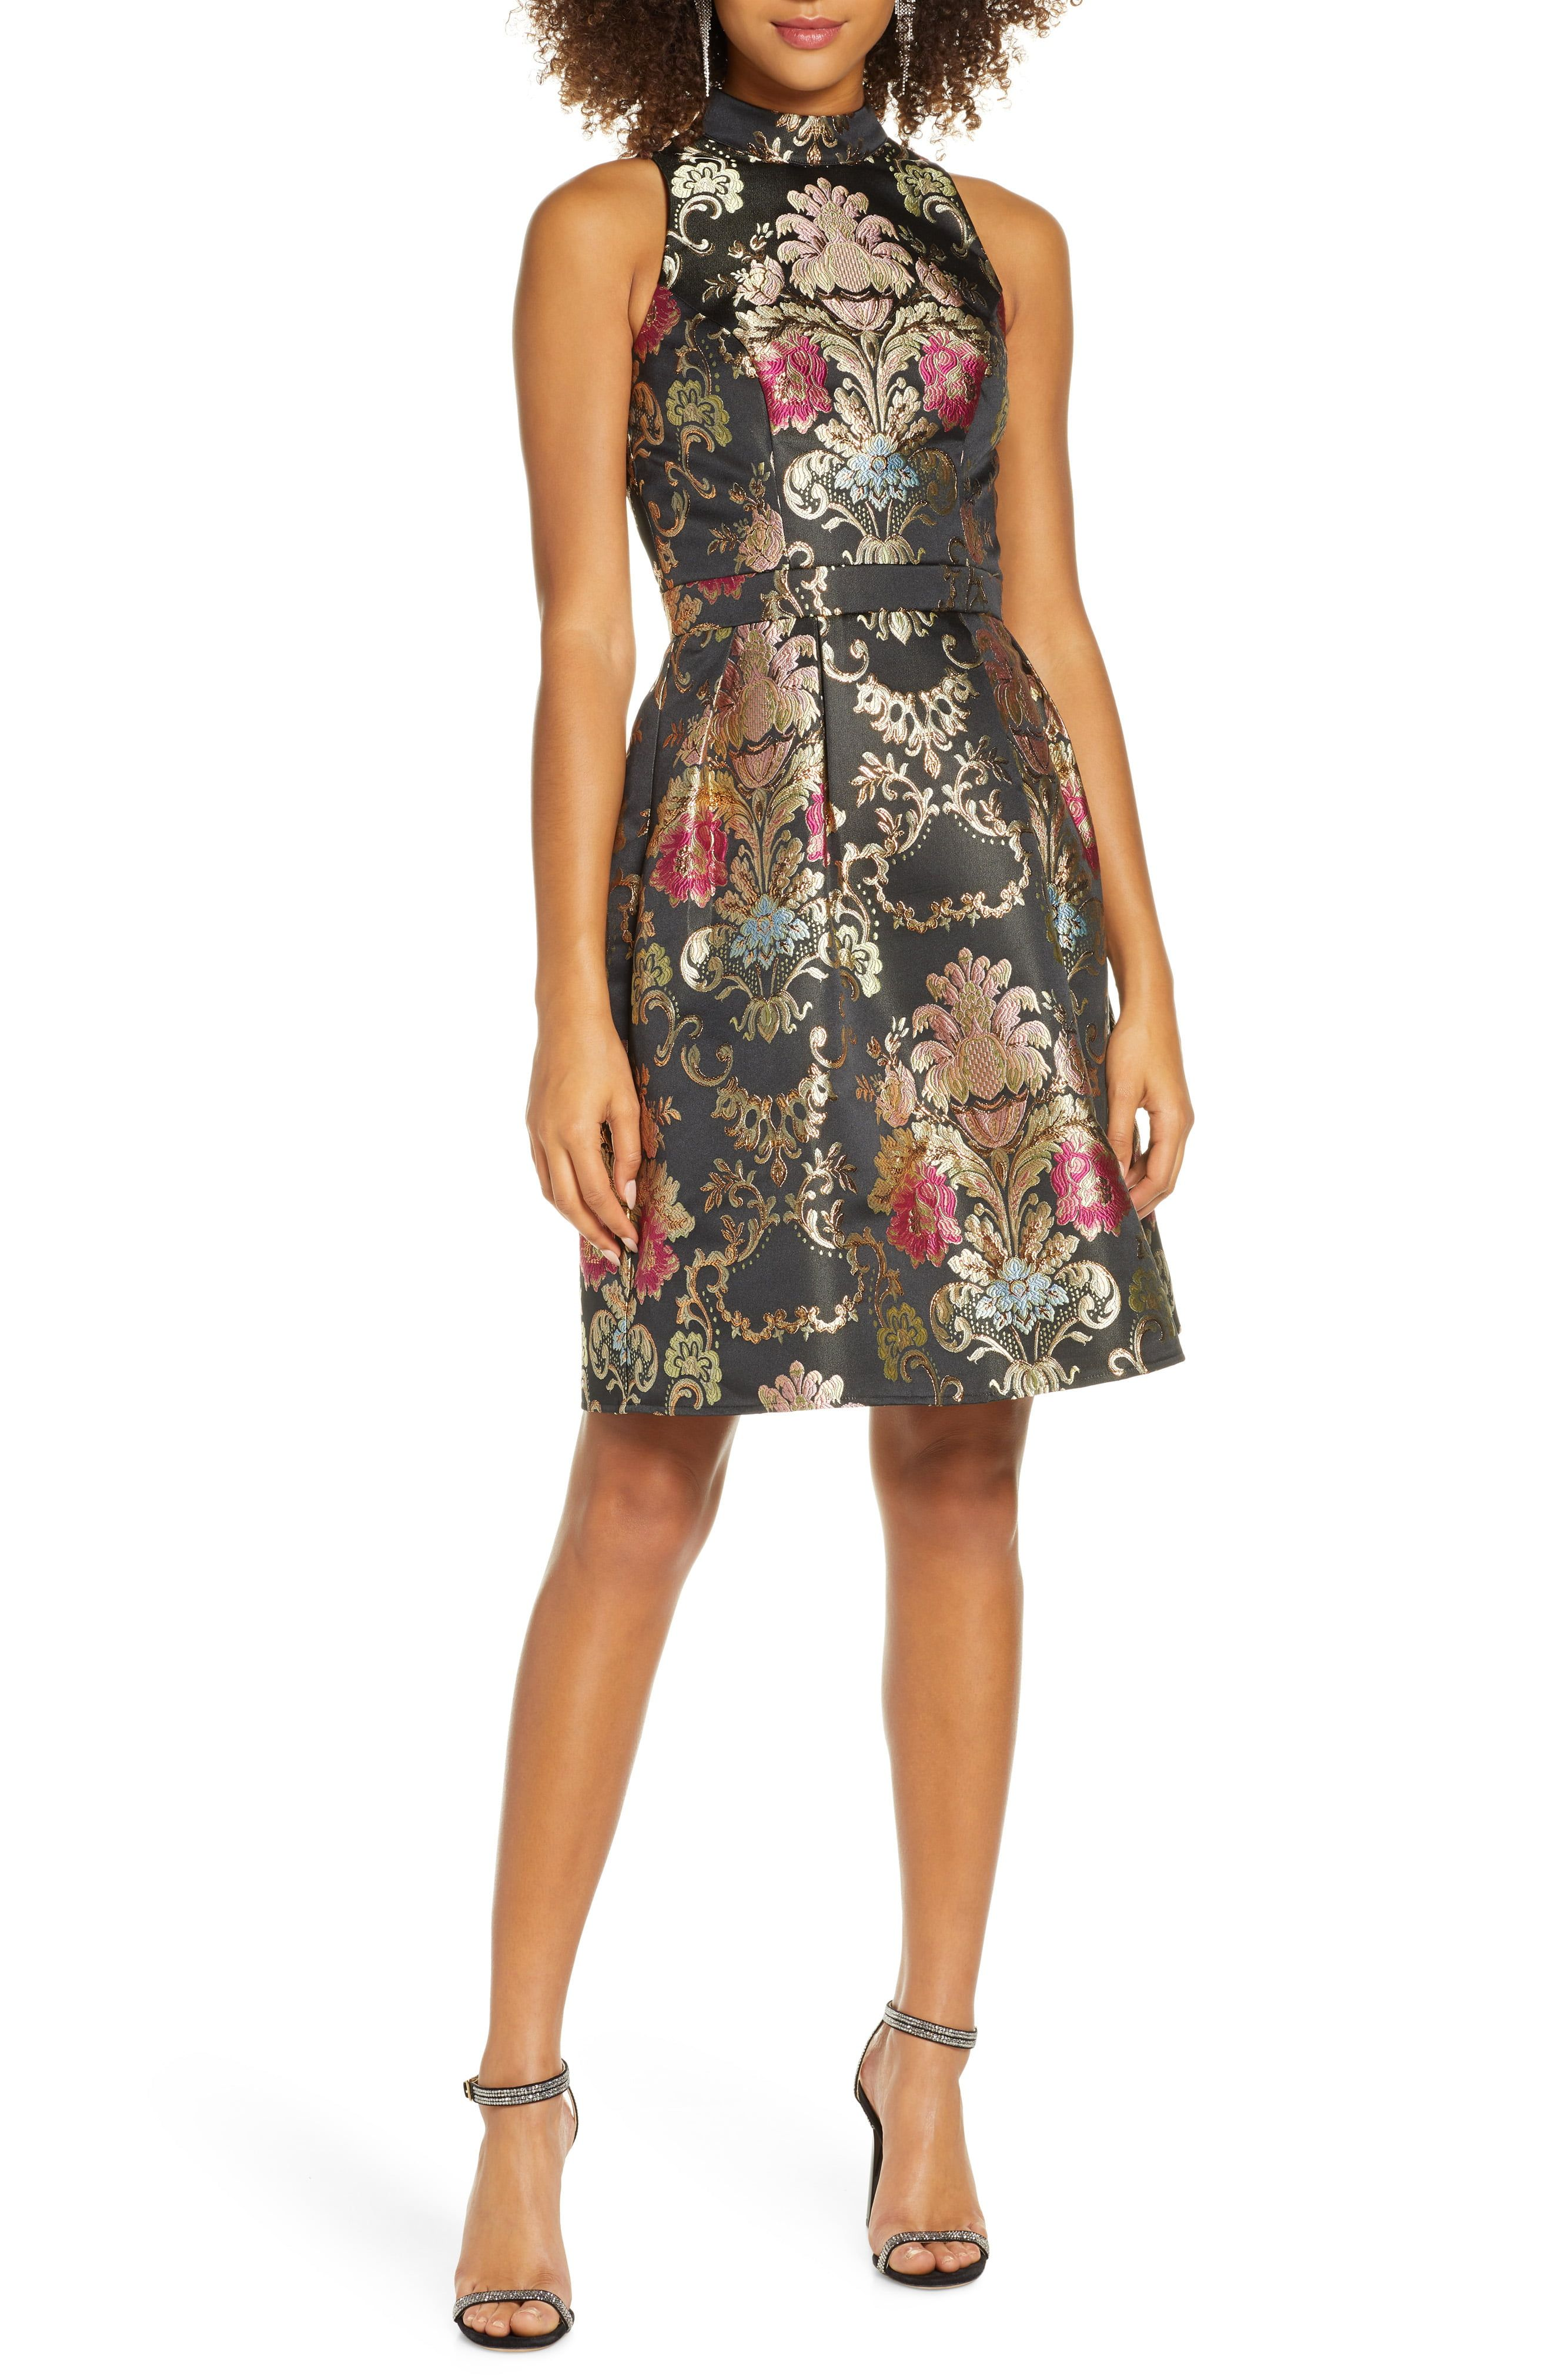 Chi Chi London Amberly Jacquard Fit Flare Cocktail Dress Nordstrom In 2021 Fit And Flare Cocktail Dress Cocktail Dress Fashion Clothes Women [ 4048 x 2640 Pixel ]